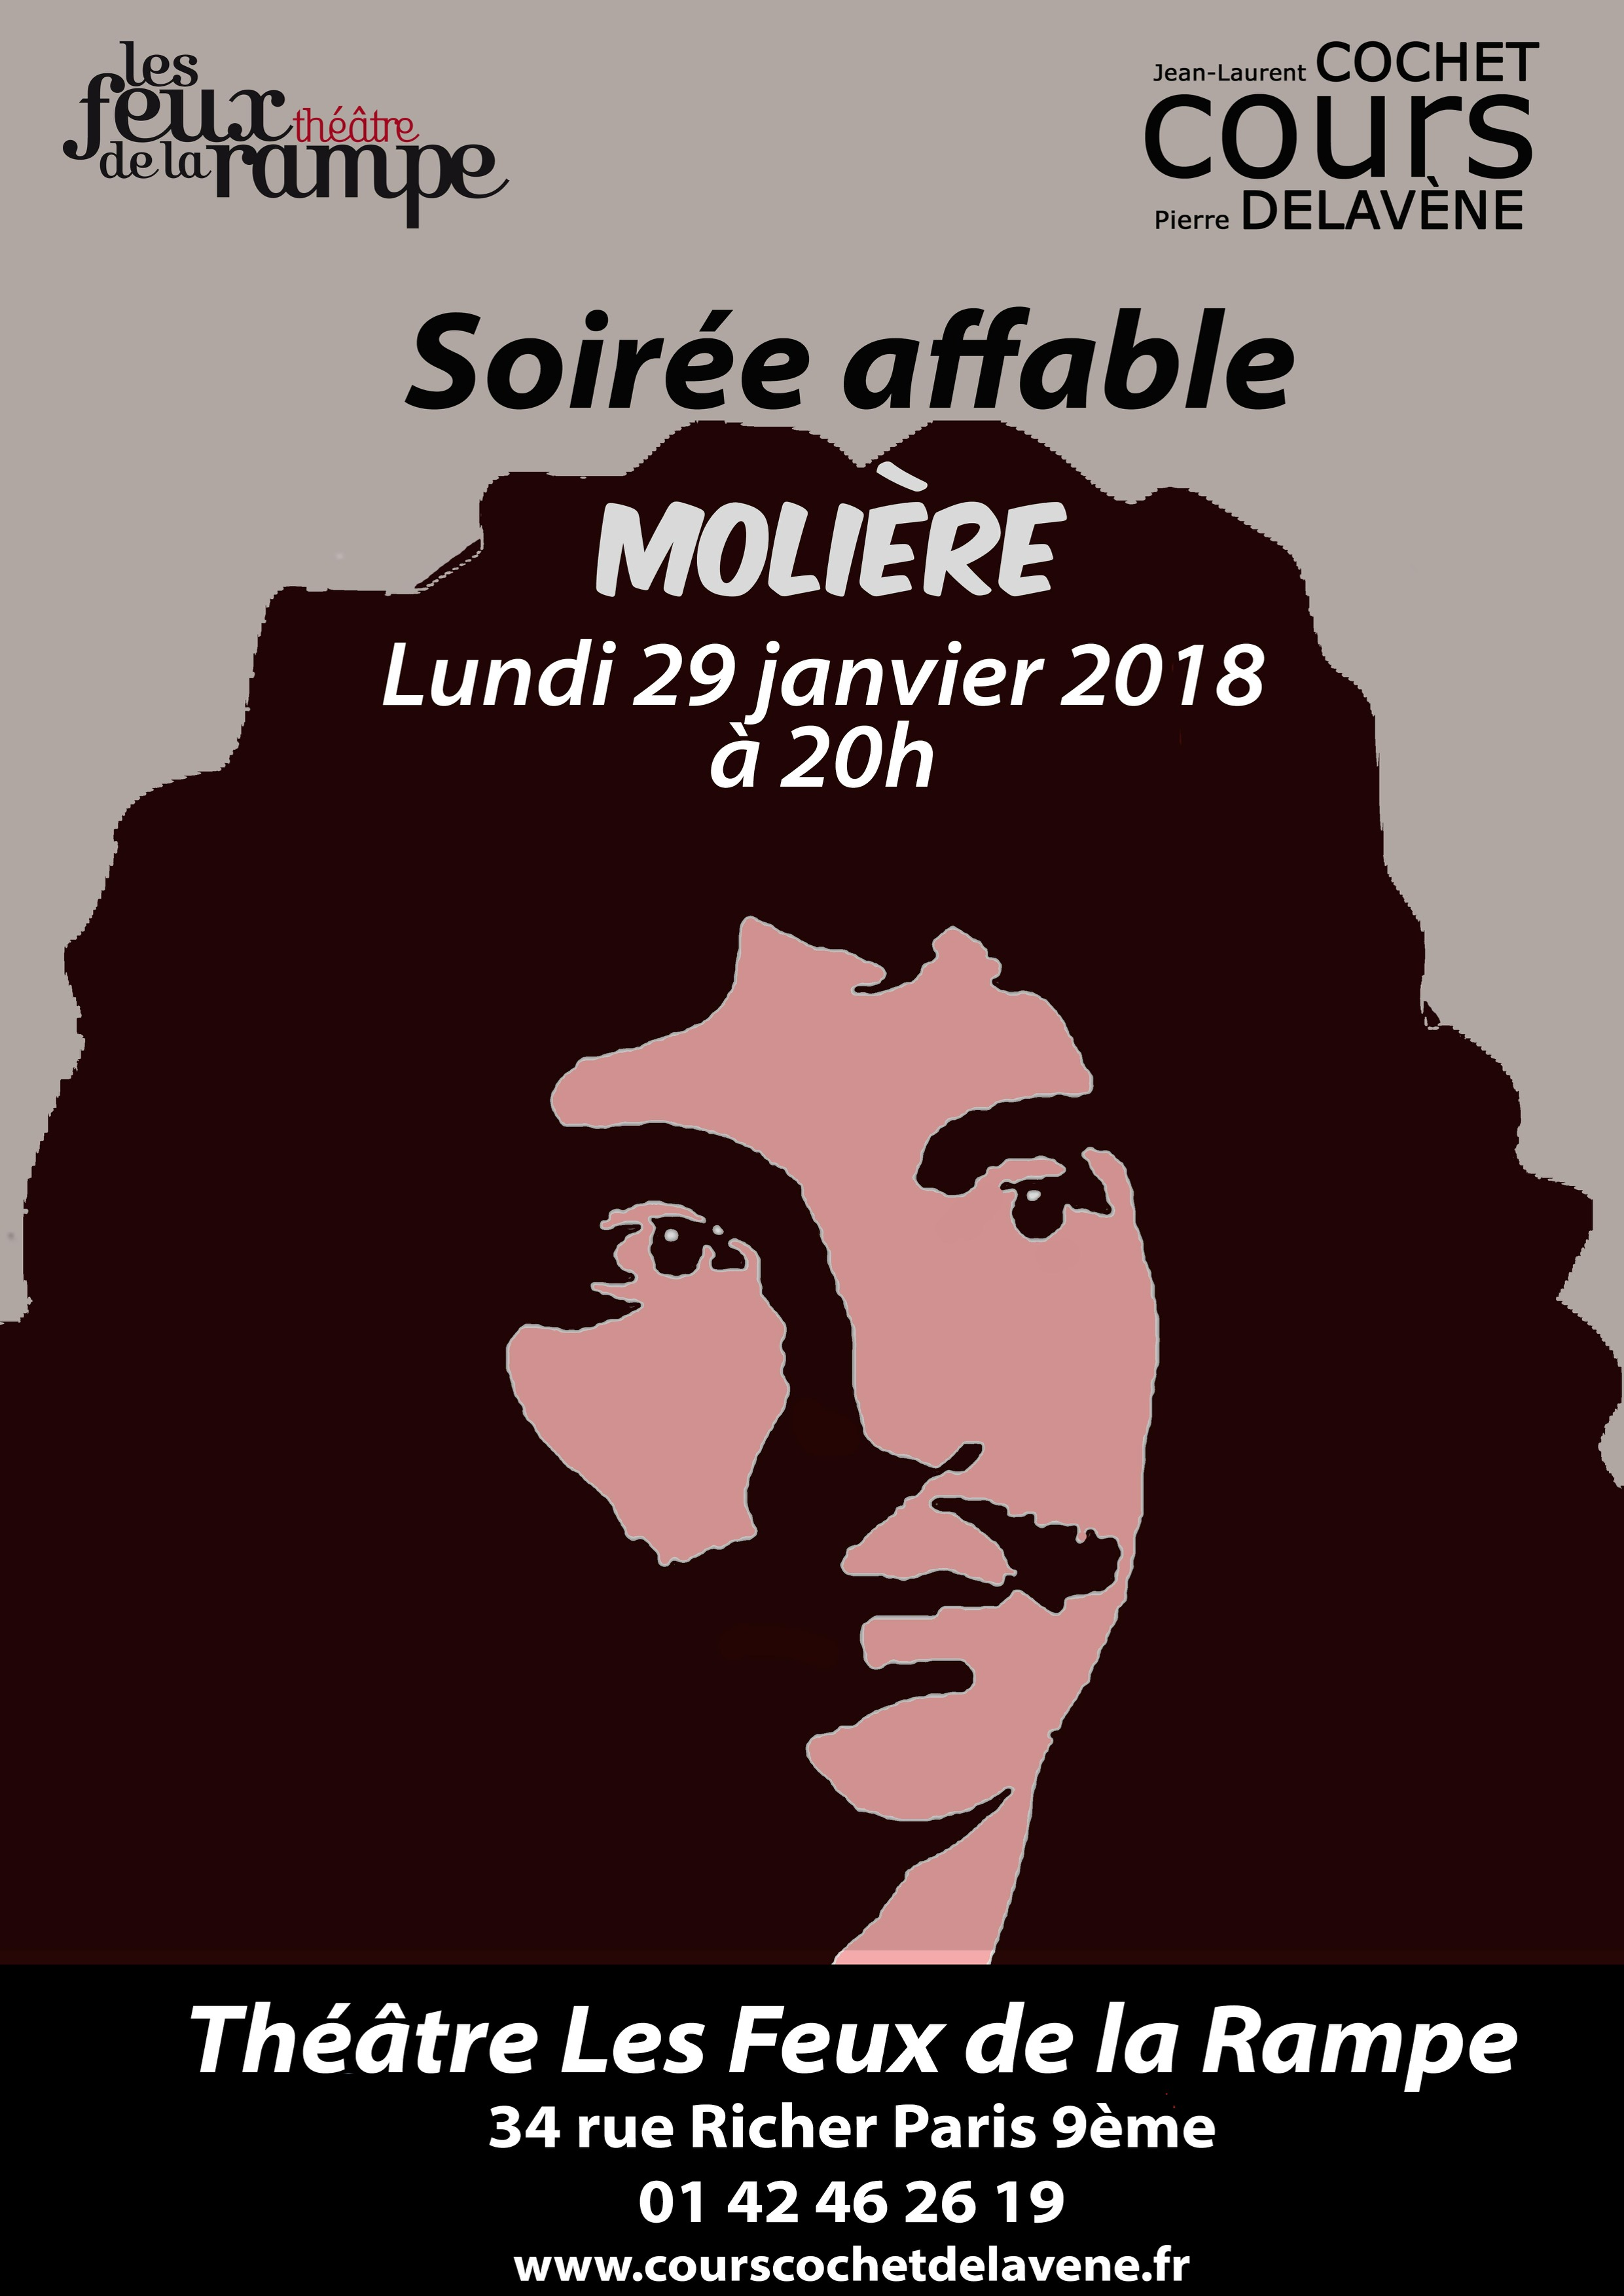 soiree-affable-moliere-29janvier2018